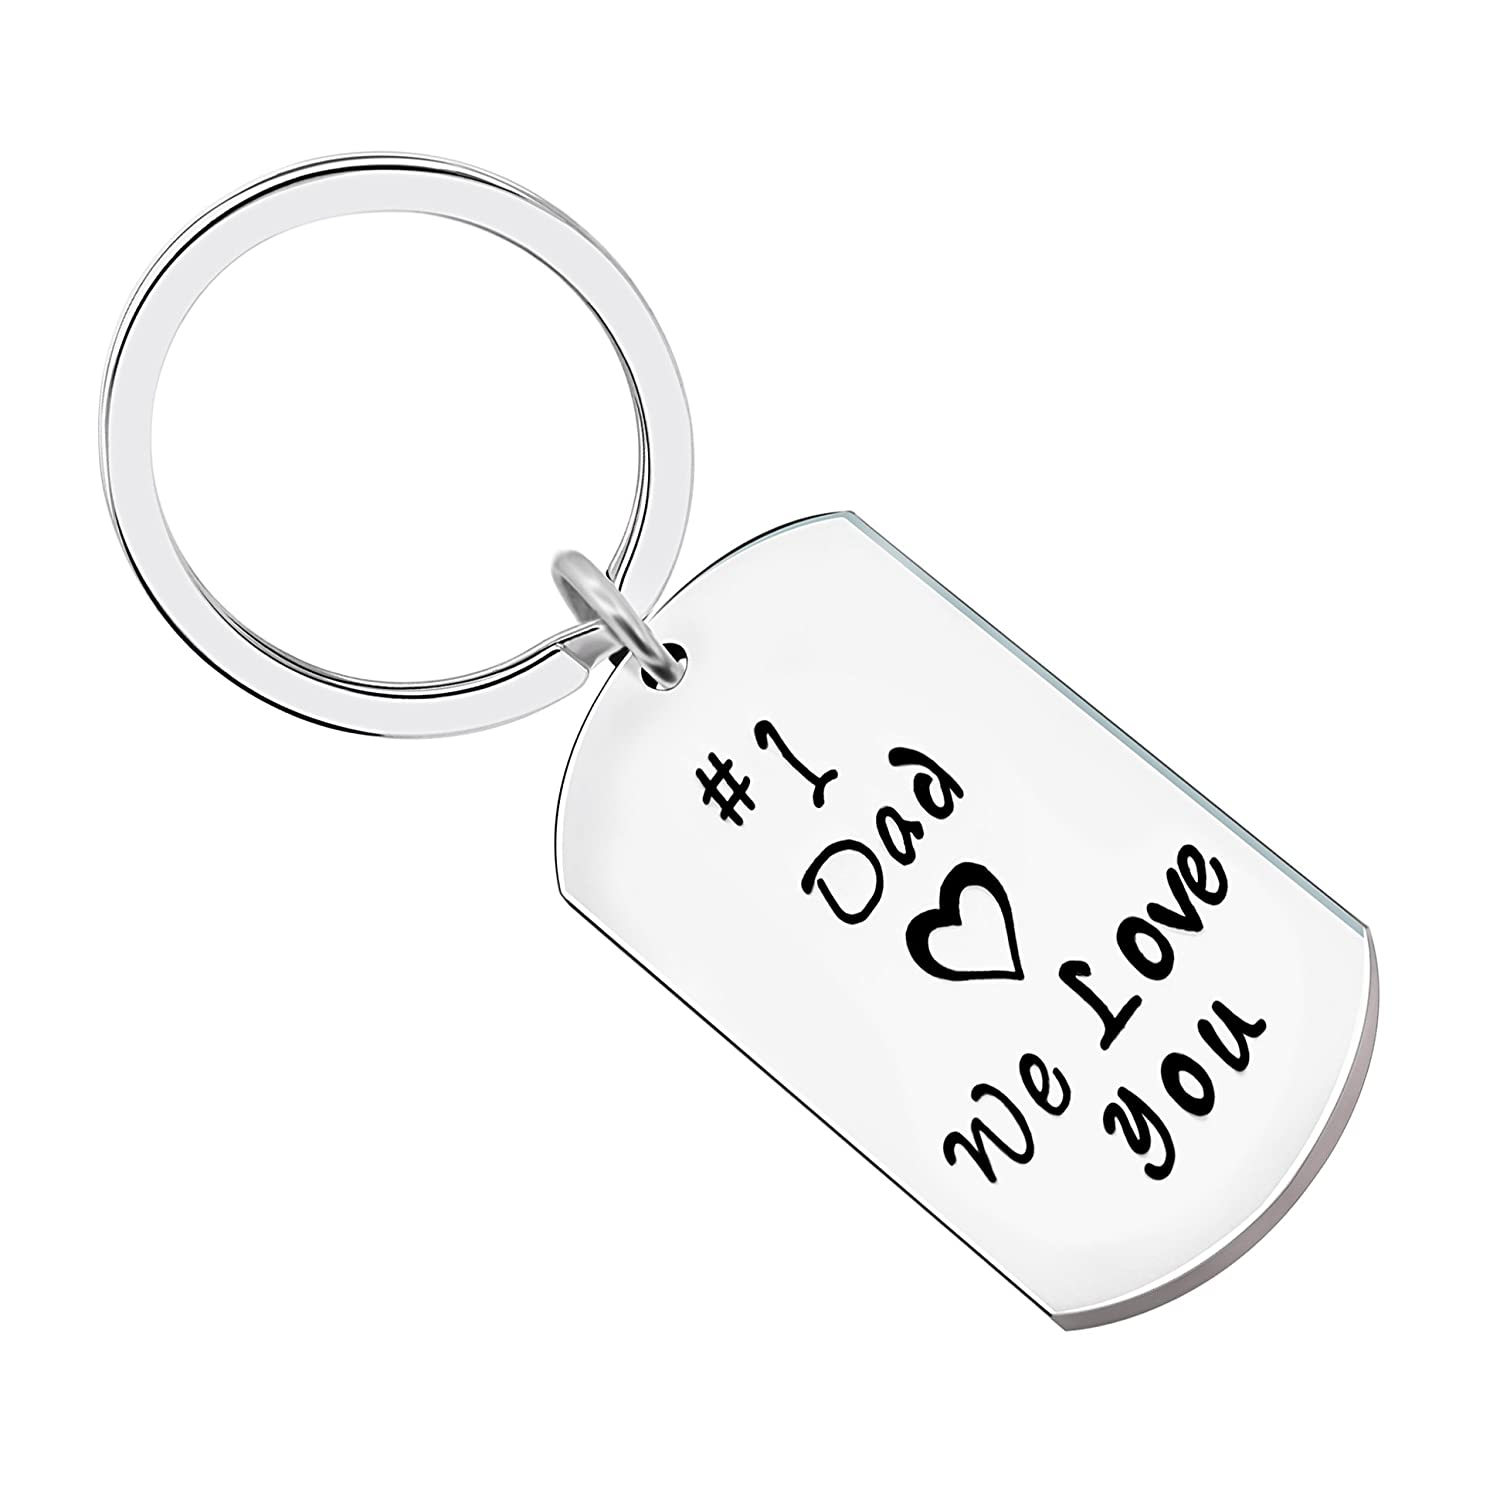 Key Chain Men Father Gifts for Dad Papa - No.1 Dad We Loved You Stainless Steel lauhonmin